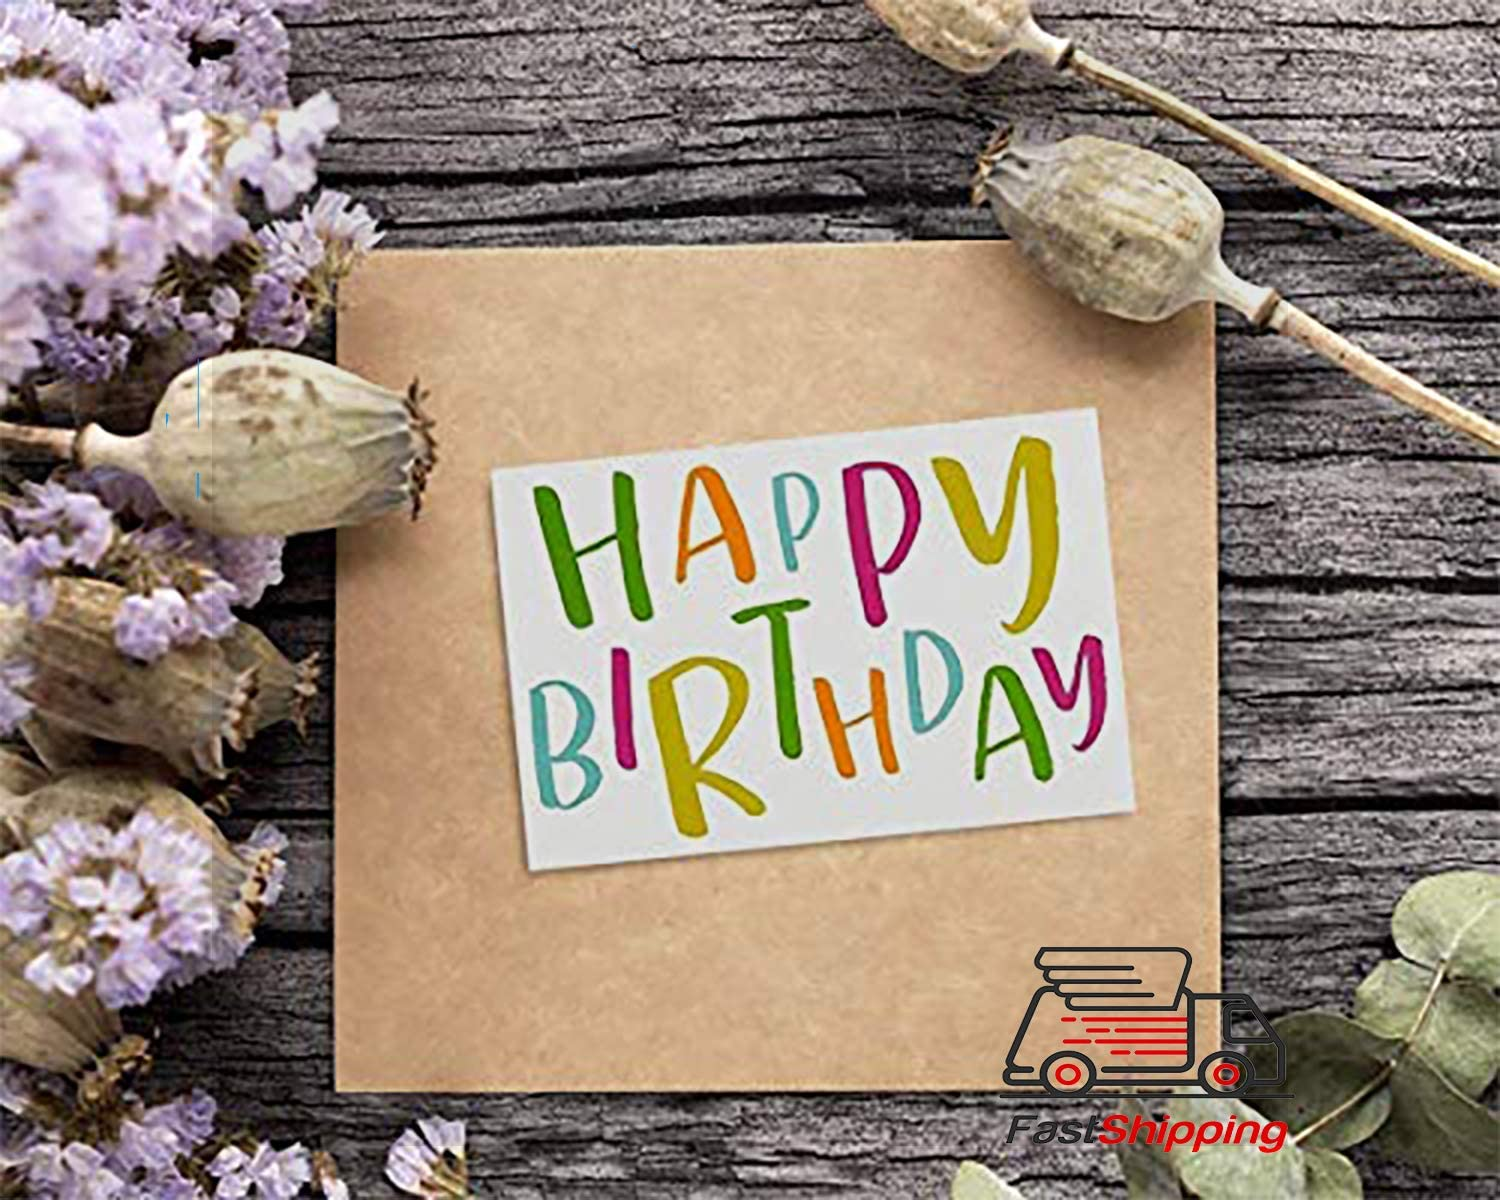 144 Happy Birthday Cards Assortment with Envelopes Bulk Box Set Variety Pack Birthday Cards In A Box 18 Colorful Designs for Men Women Kids Parents Employees 4 x 6